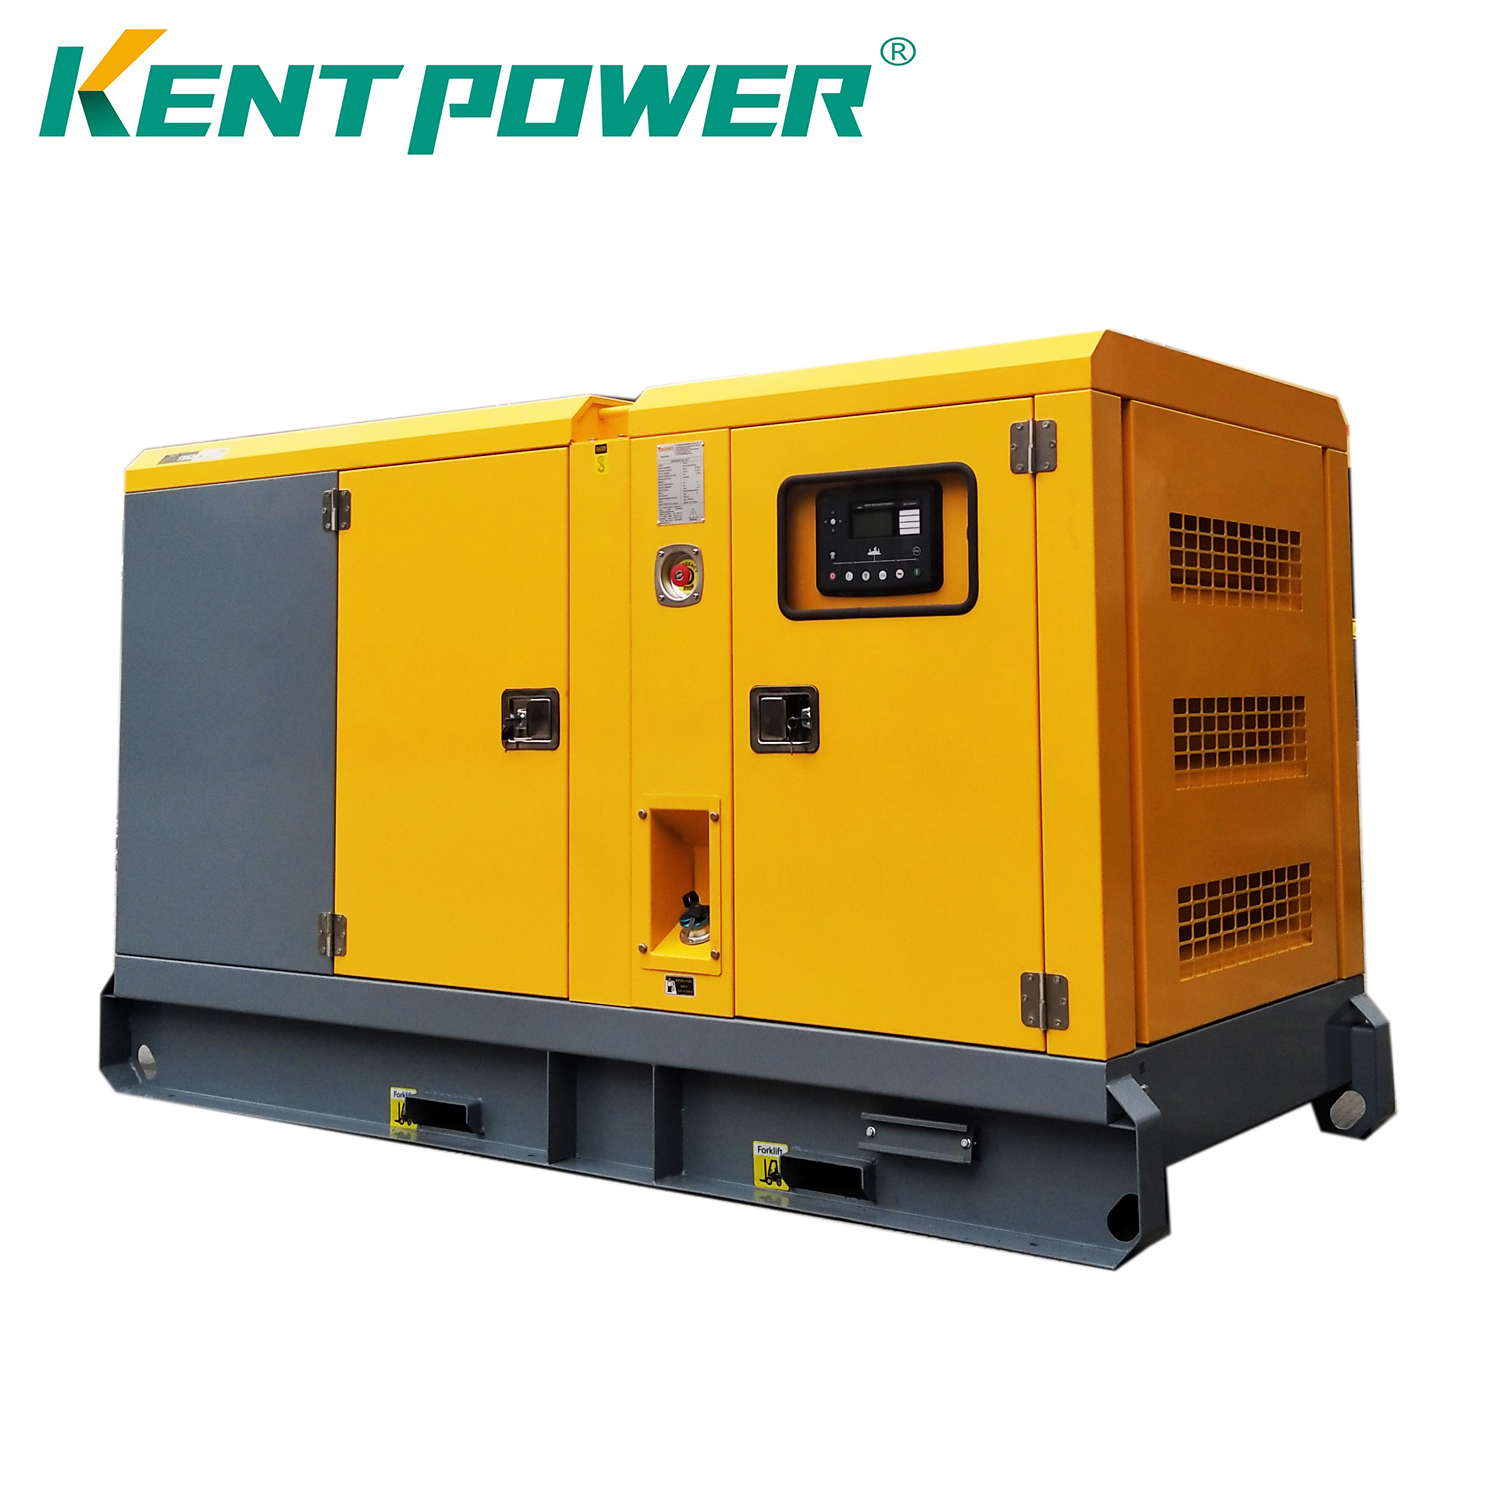 KT Cummins Series Diesel Generator Featured Image